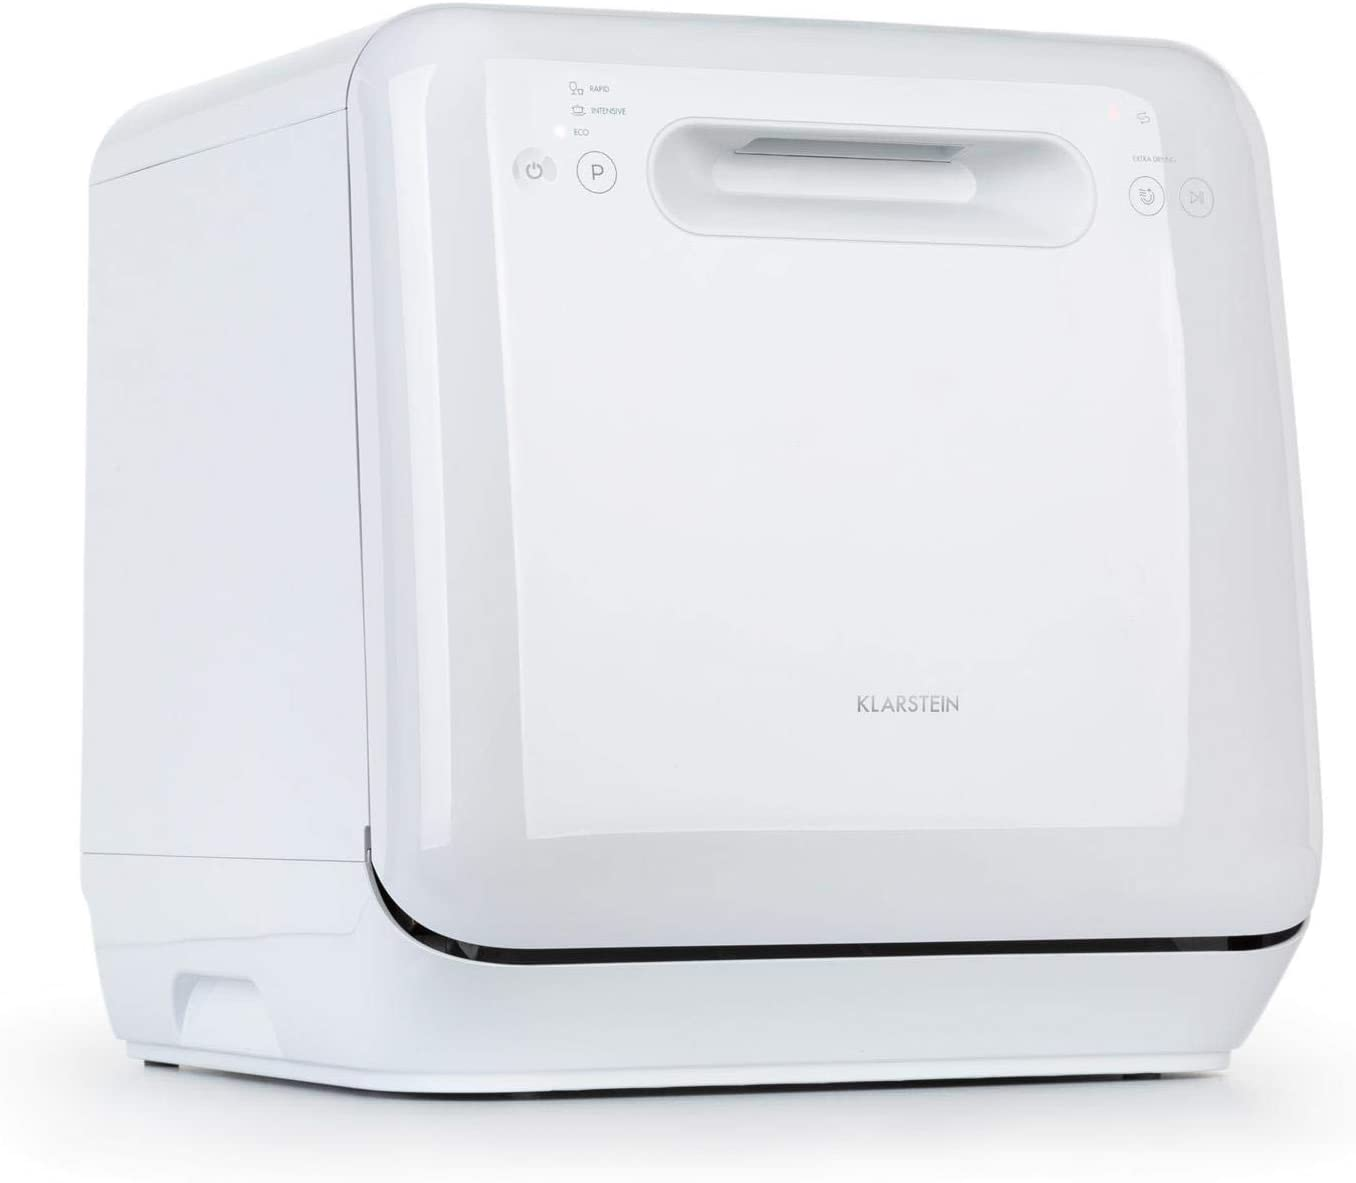 Klarstein Aquatica Mini Dishwasher Colour: White 2 Place Settings A Water Consumption: 5 litres 125 kWh//Year Touch Control 3 Programmes 360 /° Wash Installation-Free Freestanding